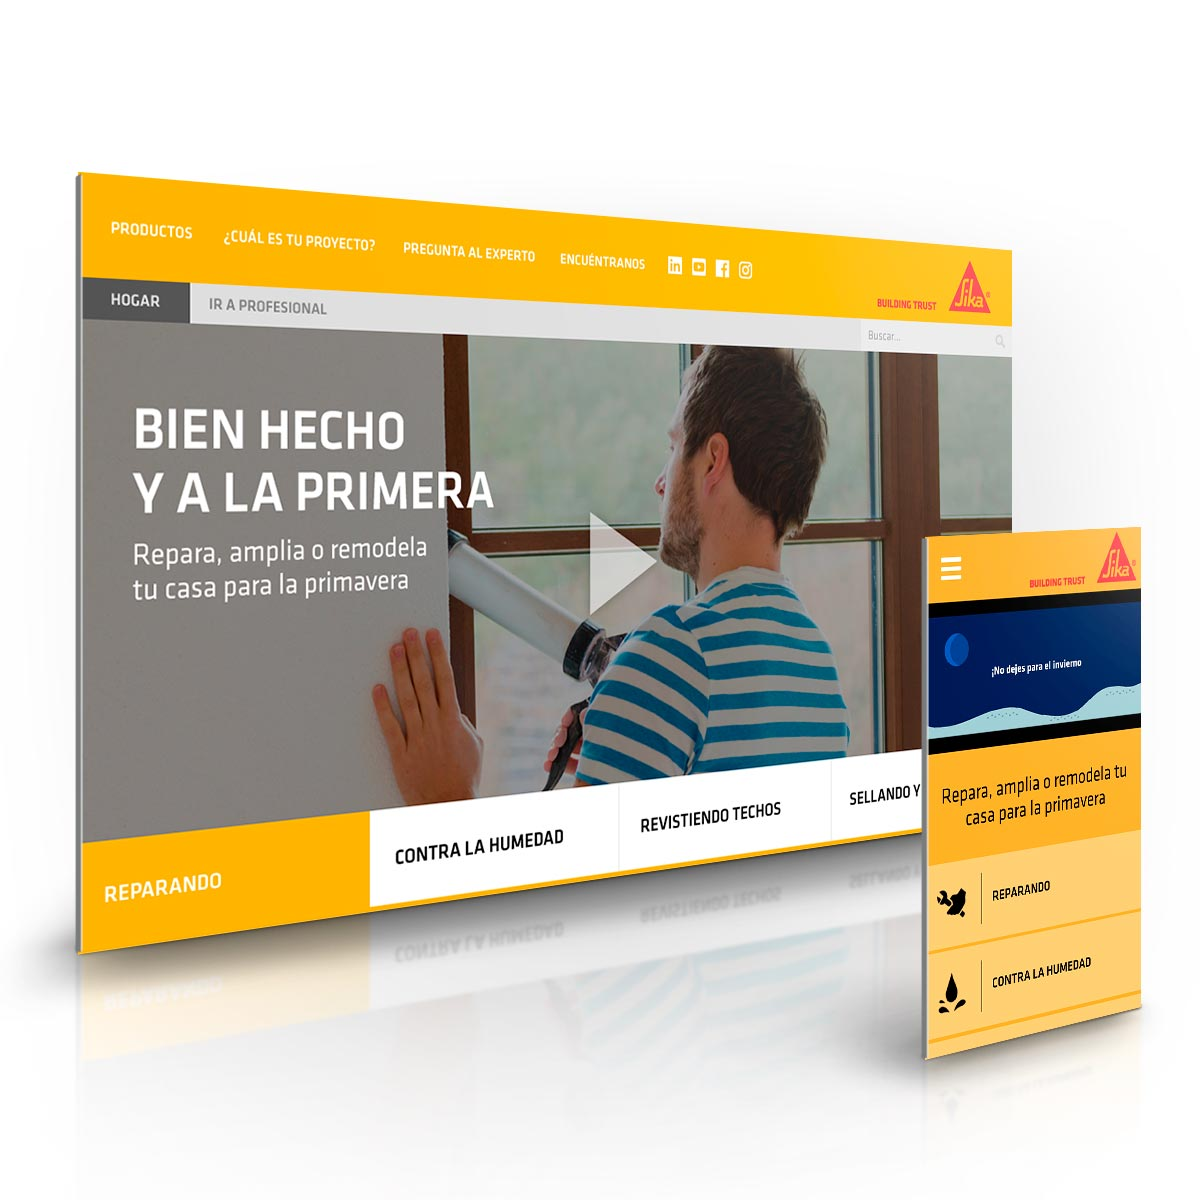 Sitio Web mobile first sikachile.cl - Sika - Agencia Walkers